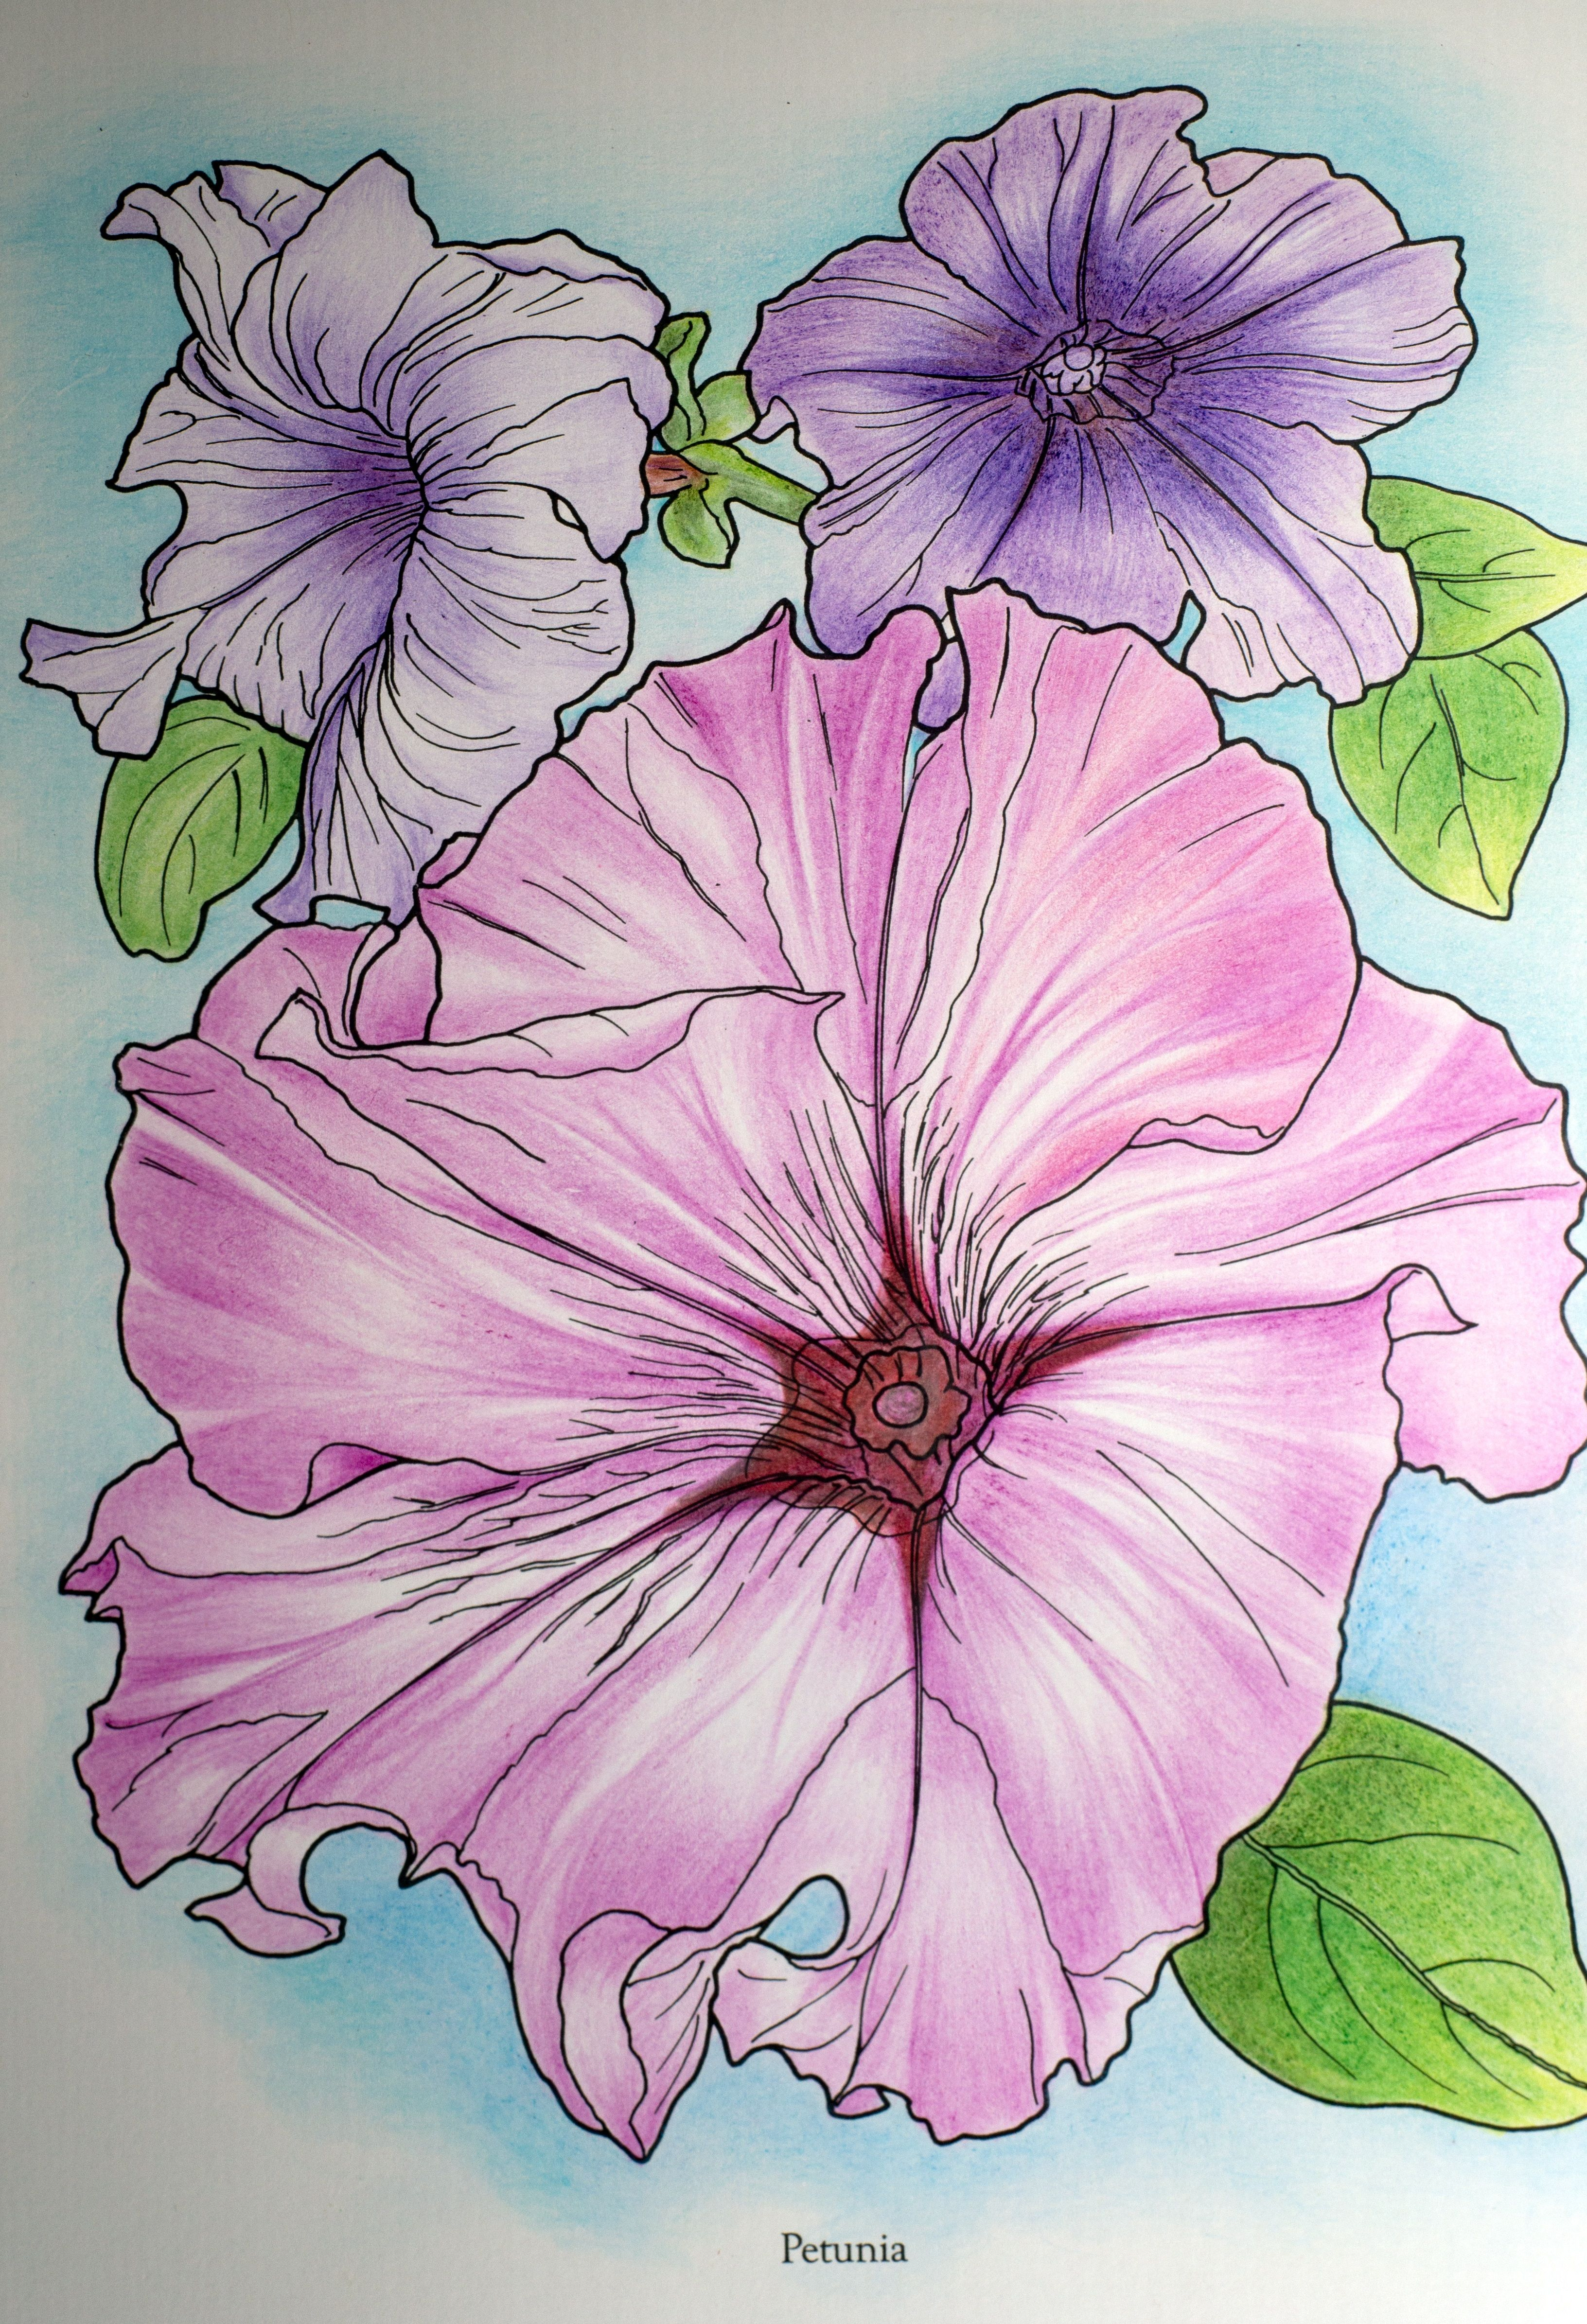 Lina 18 Division From In Full Bloom Coloring Book Flower Drawing Coloring Books Flower Art